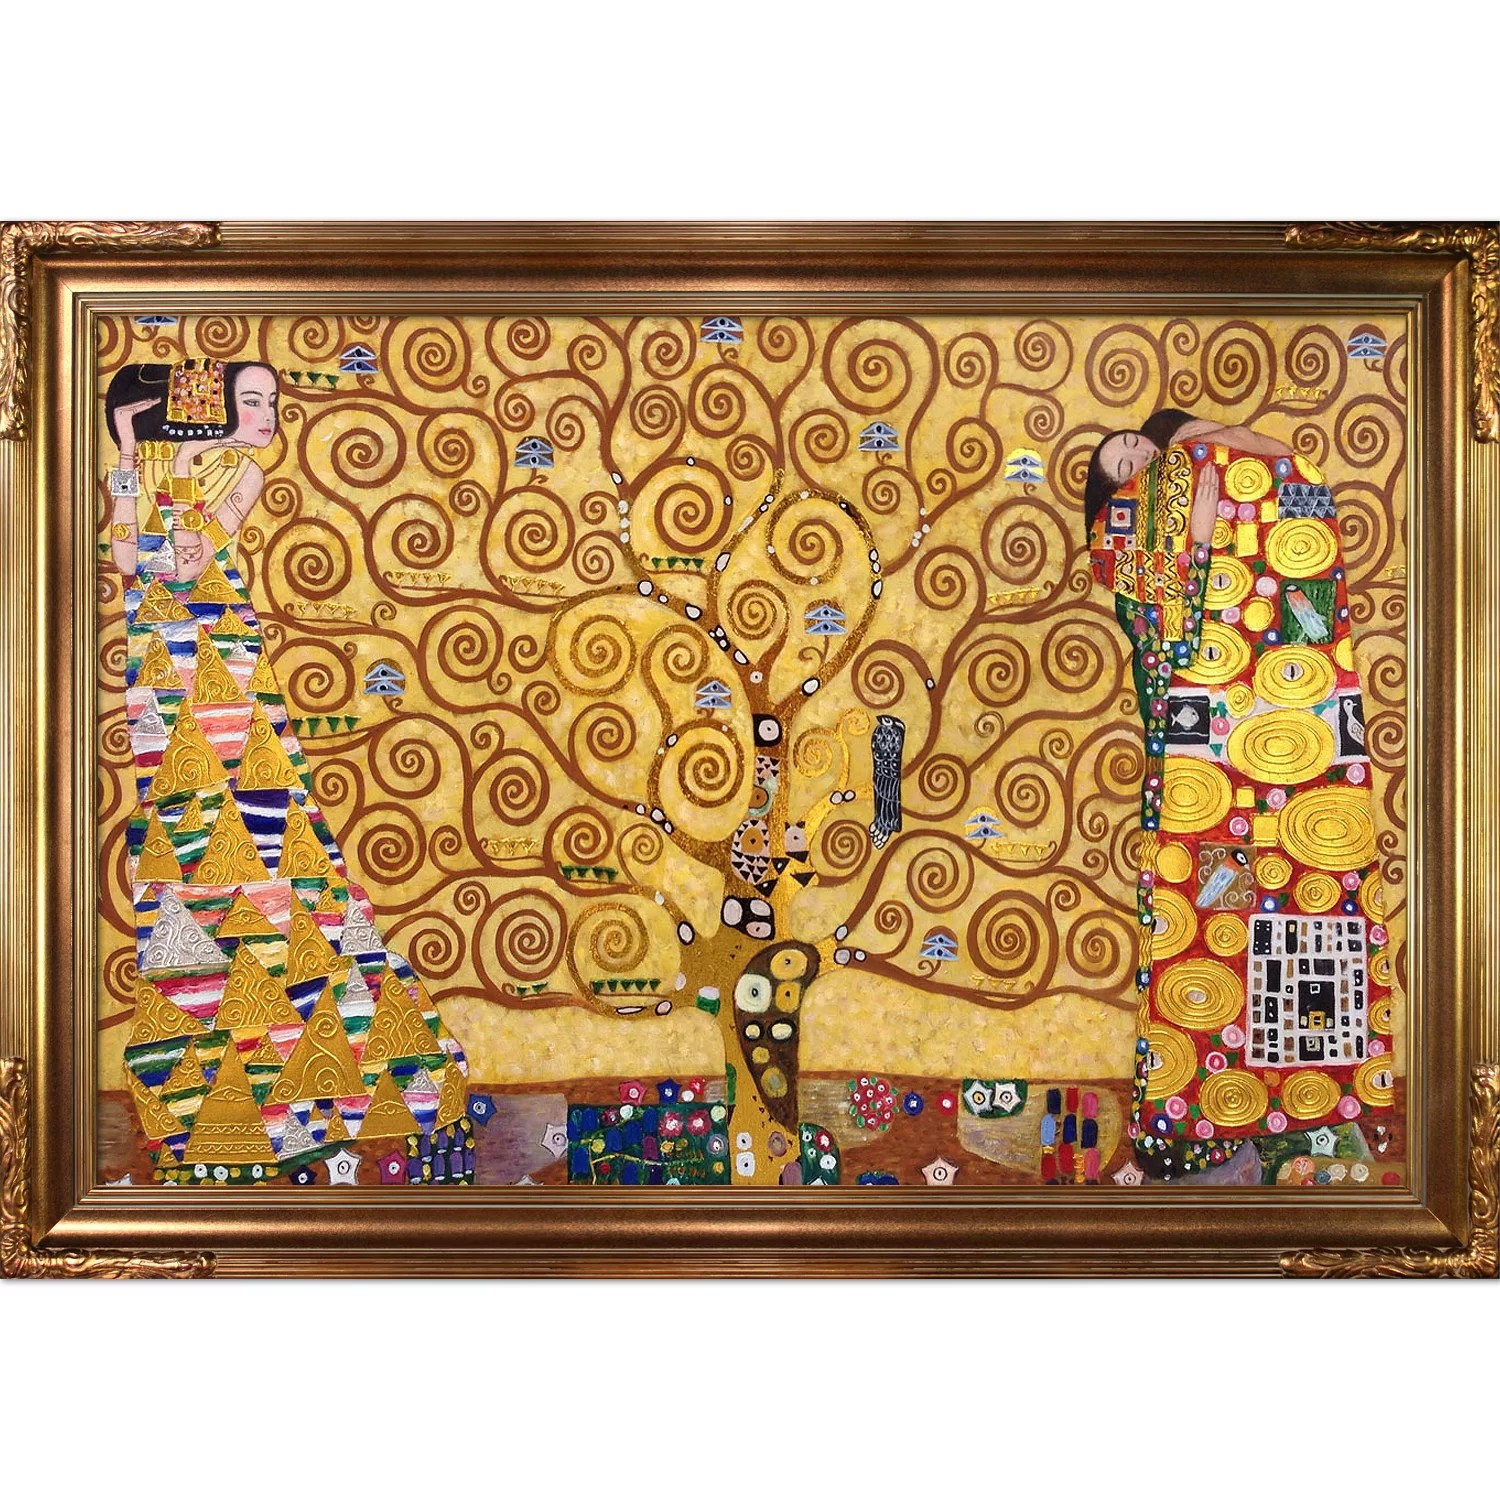 Klimt Fregio Stoclet Tori Home The Tree Of Life Stoclet Frieze Luxury Line